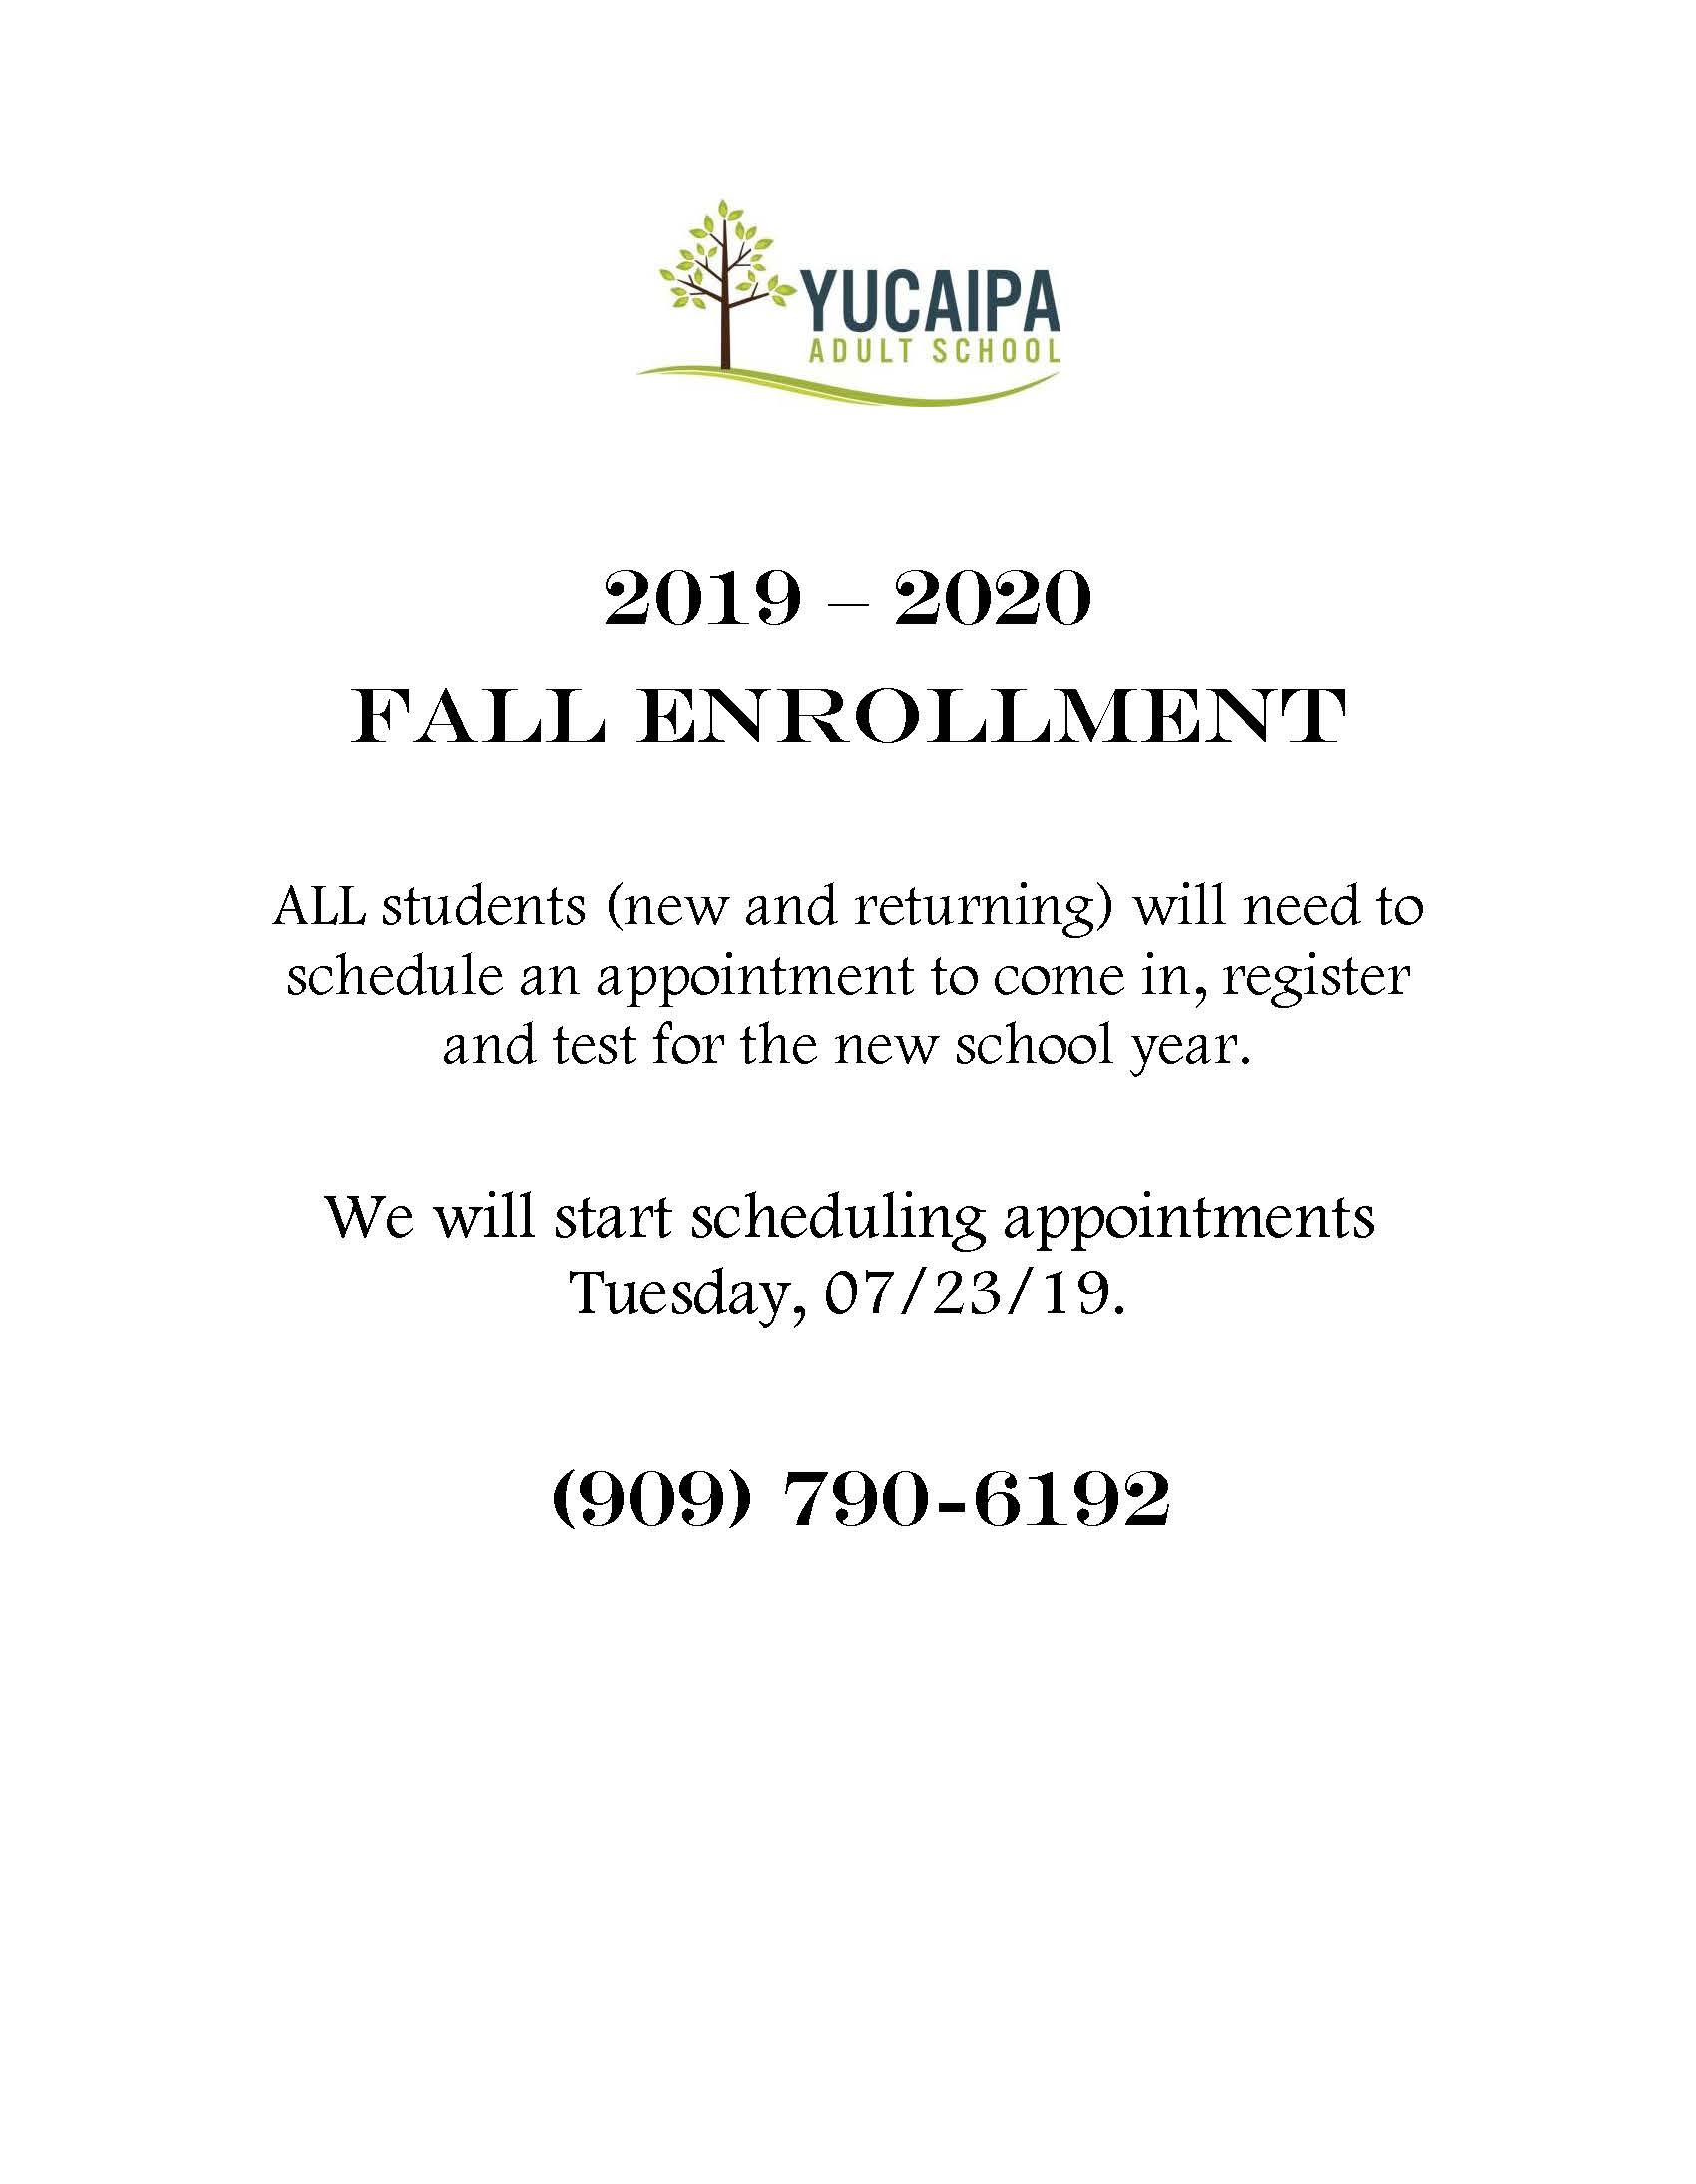 Enrolling for the 2019 - 2020 School Year